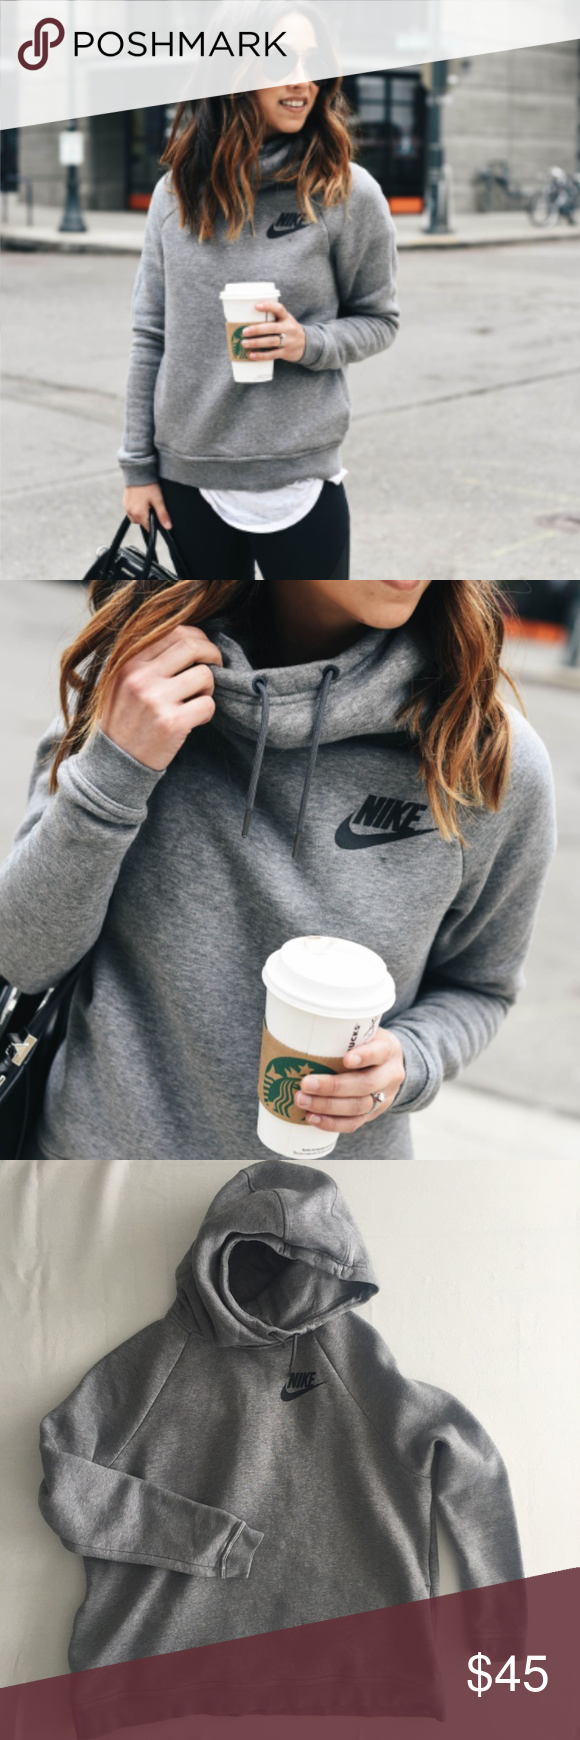 05ebe9668d9b Nike Rally Funnel Neck Hoodie fits like M Saw this cute gray Nike hoodie on  a